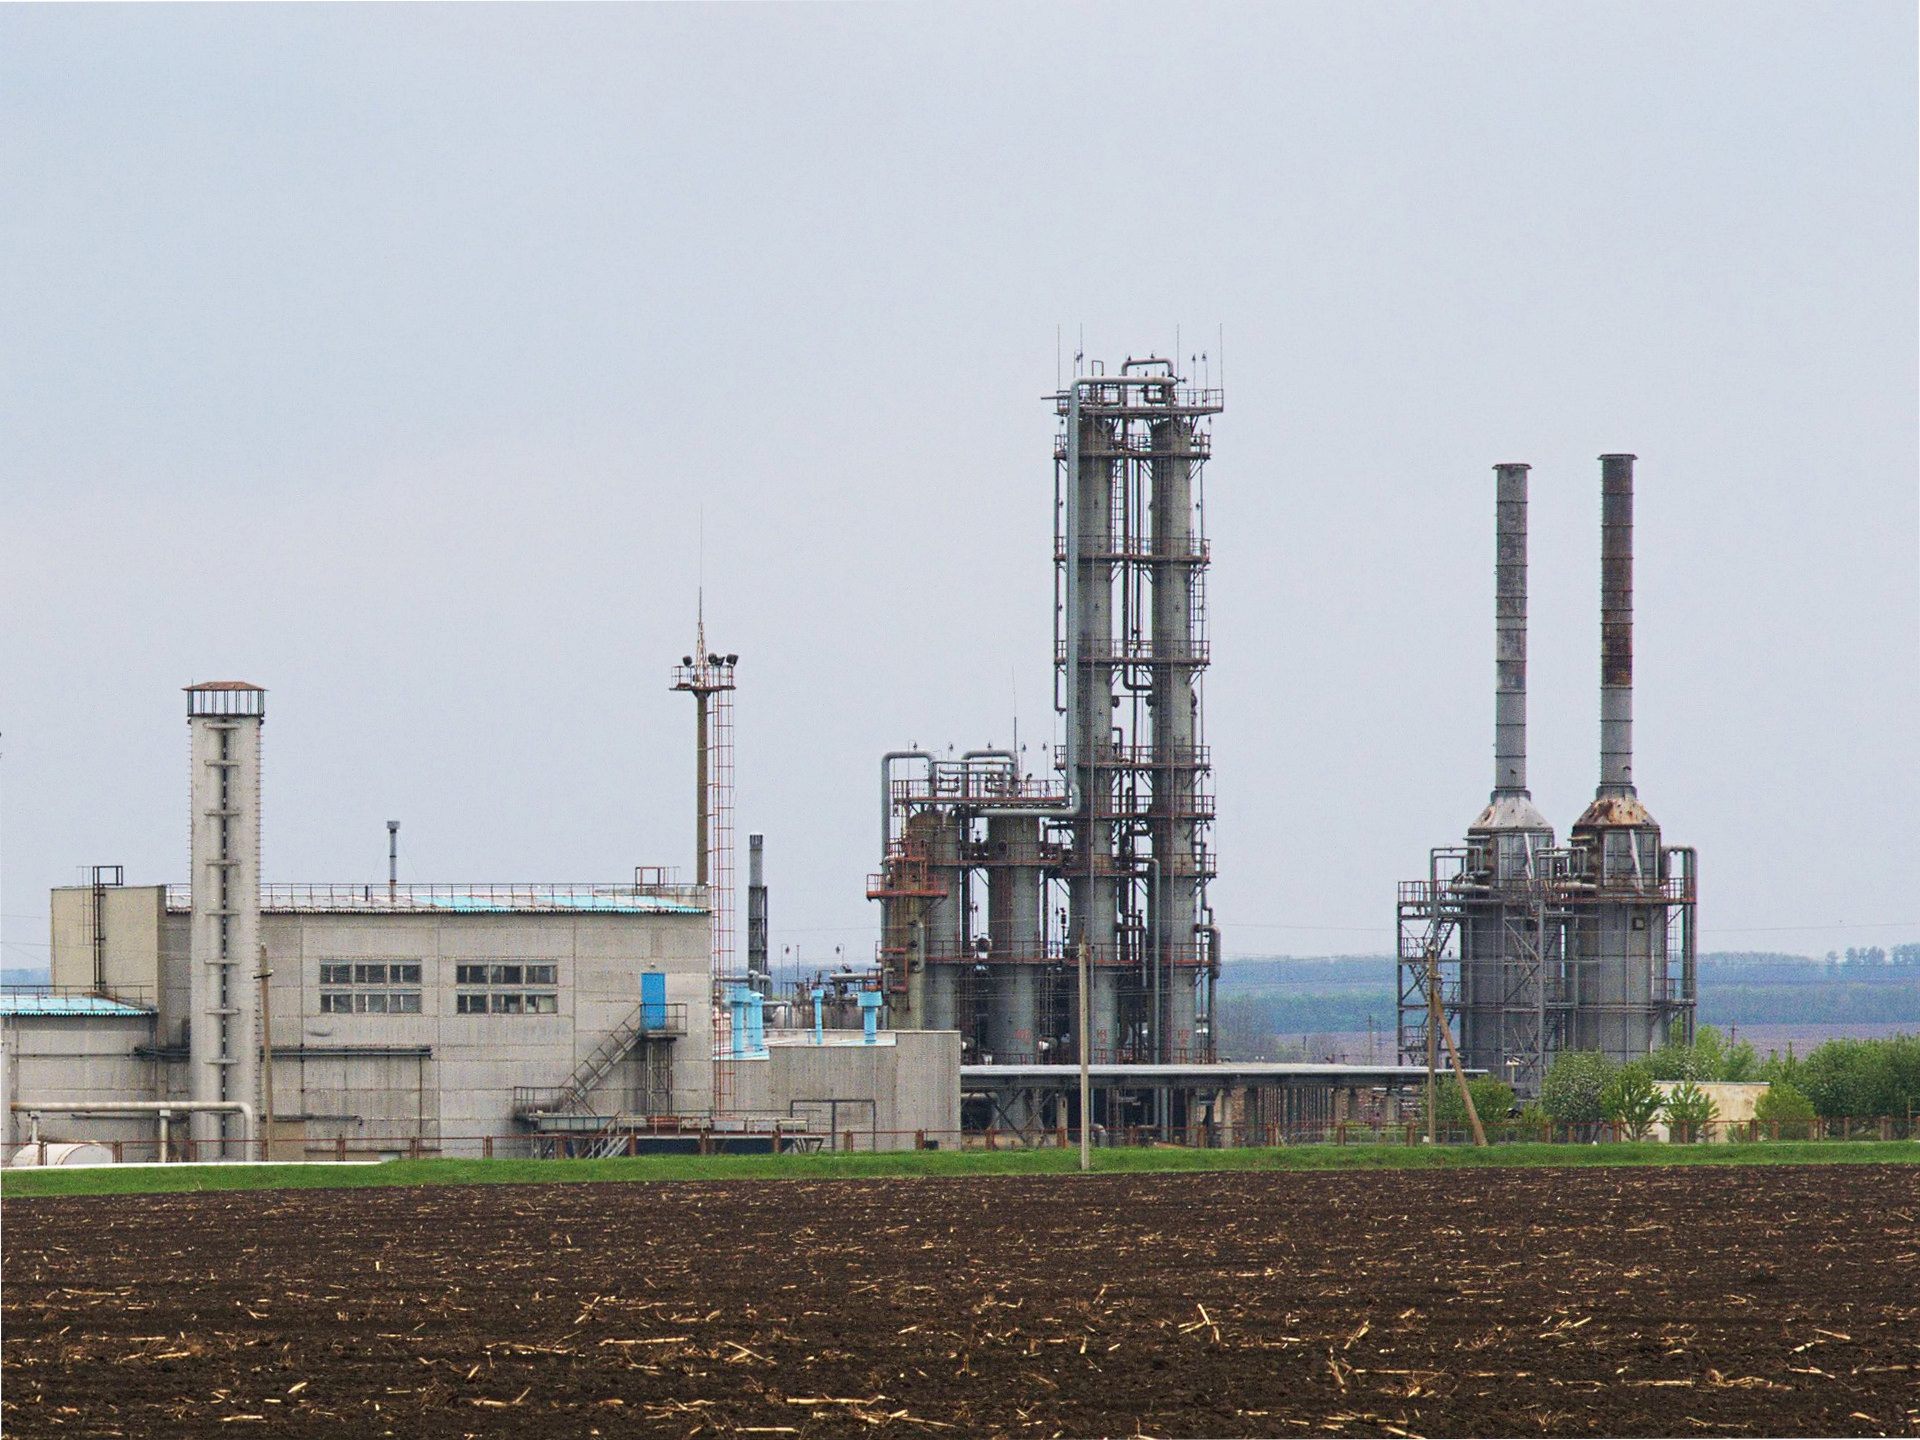 A Natural Gas Processing Facility By ReAl (Own work) [CC BY-SA 3.0 (http://creativecommons.org/licenses/by-sa/3.0)], via Wikimedia Commons